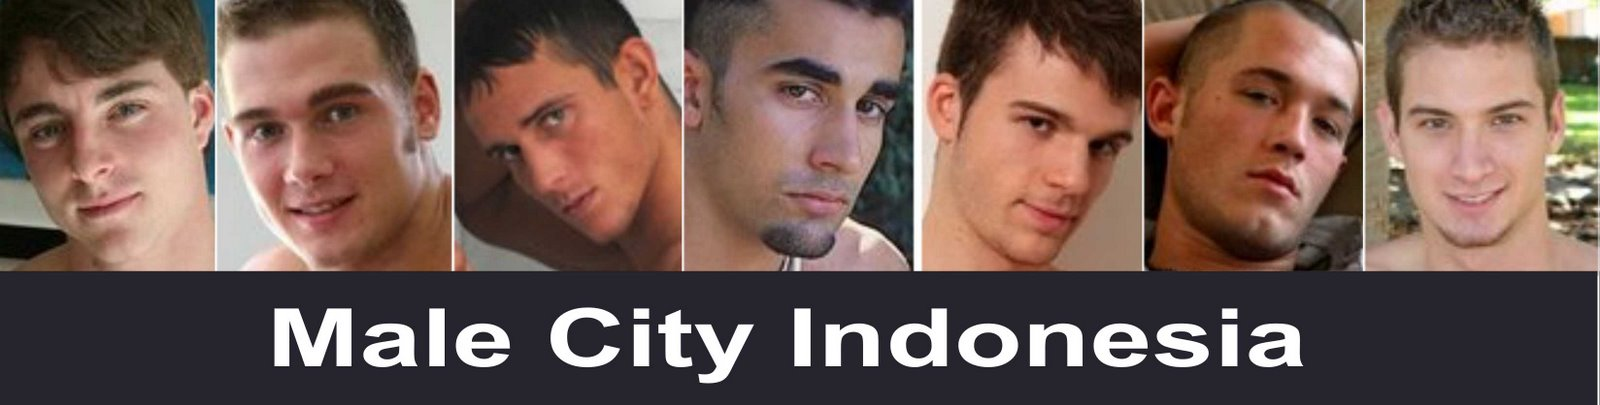 Male City Indonesia